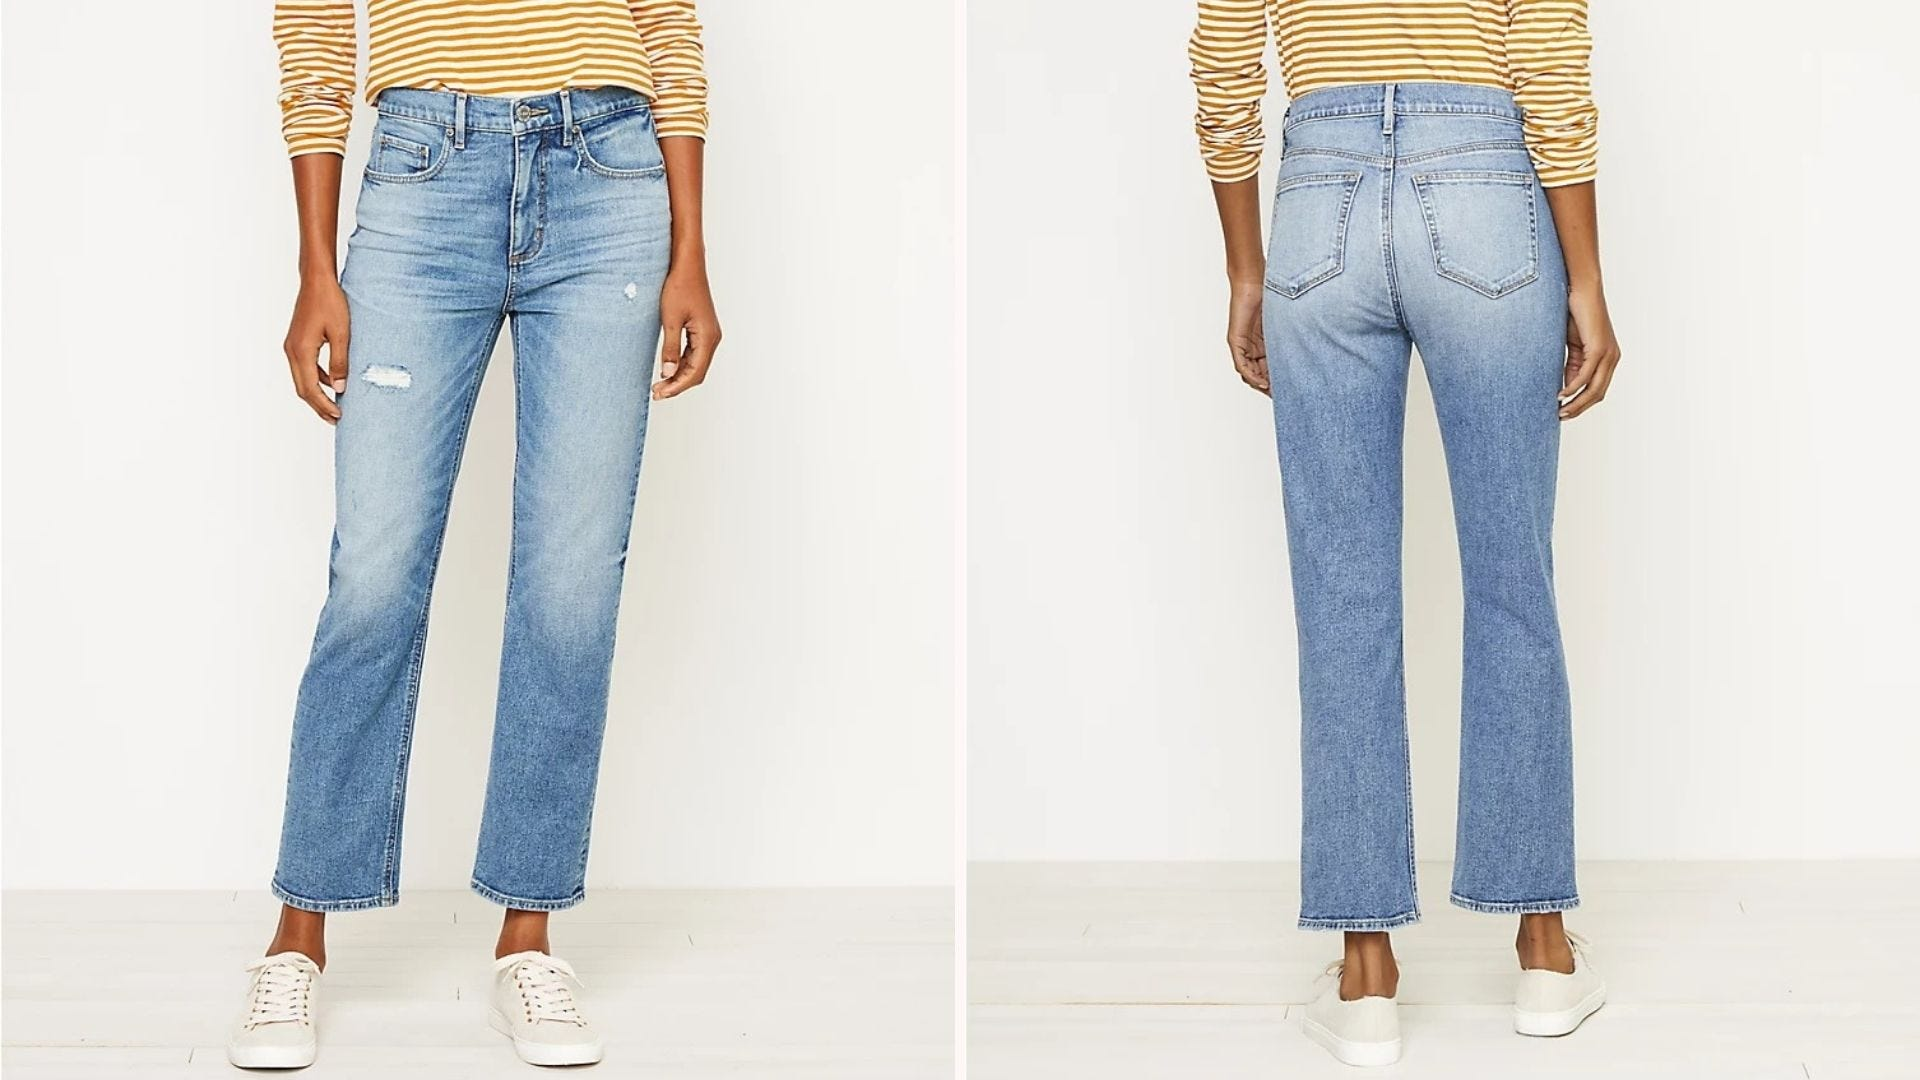 Front and back view of a woman wearing the High-Rise Straight Crop Jeans.